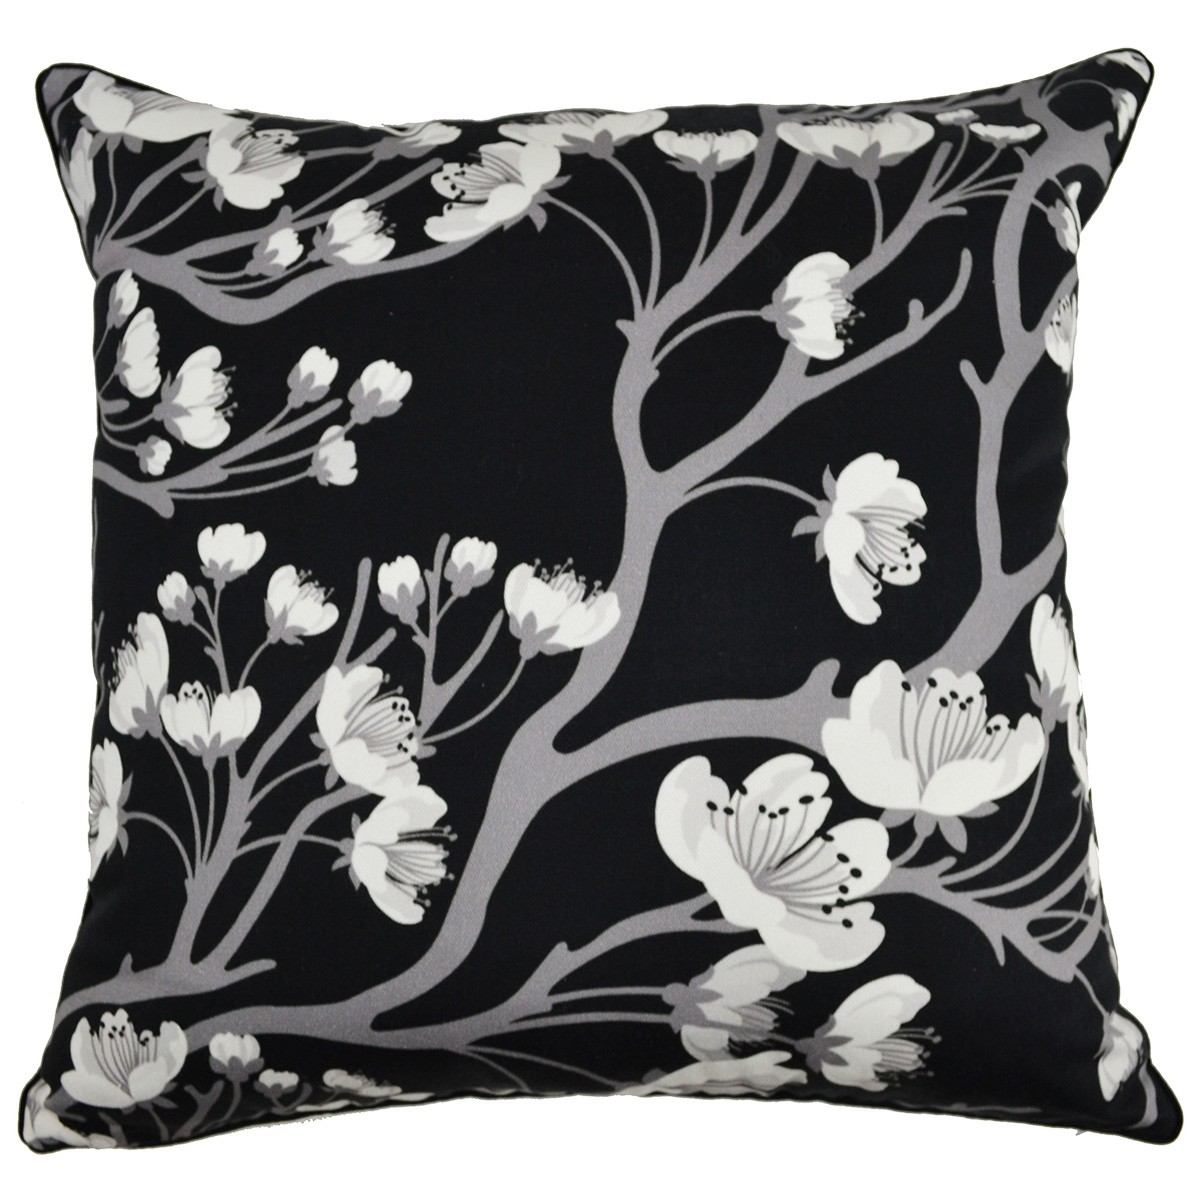 Monochrome Cherry Blossom Printed Cotton Scatter Cushion